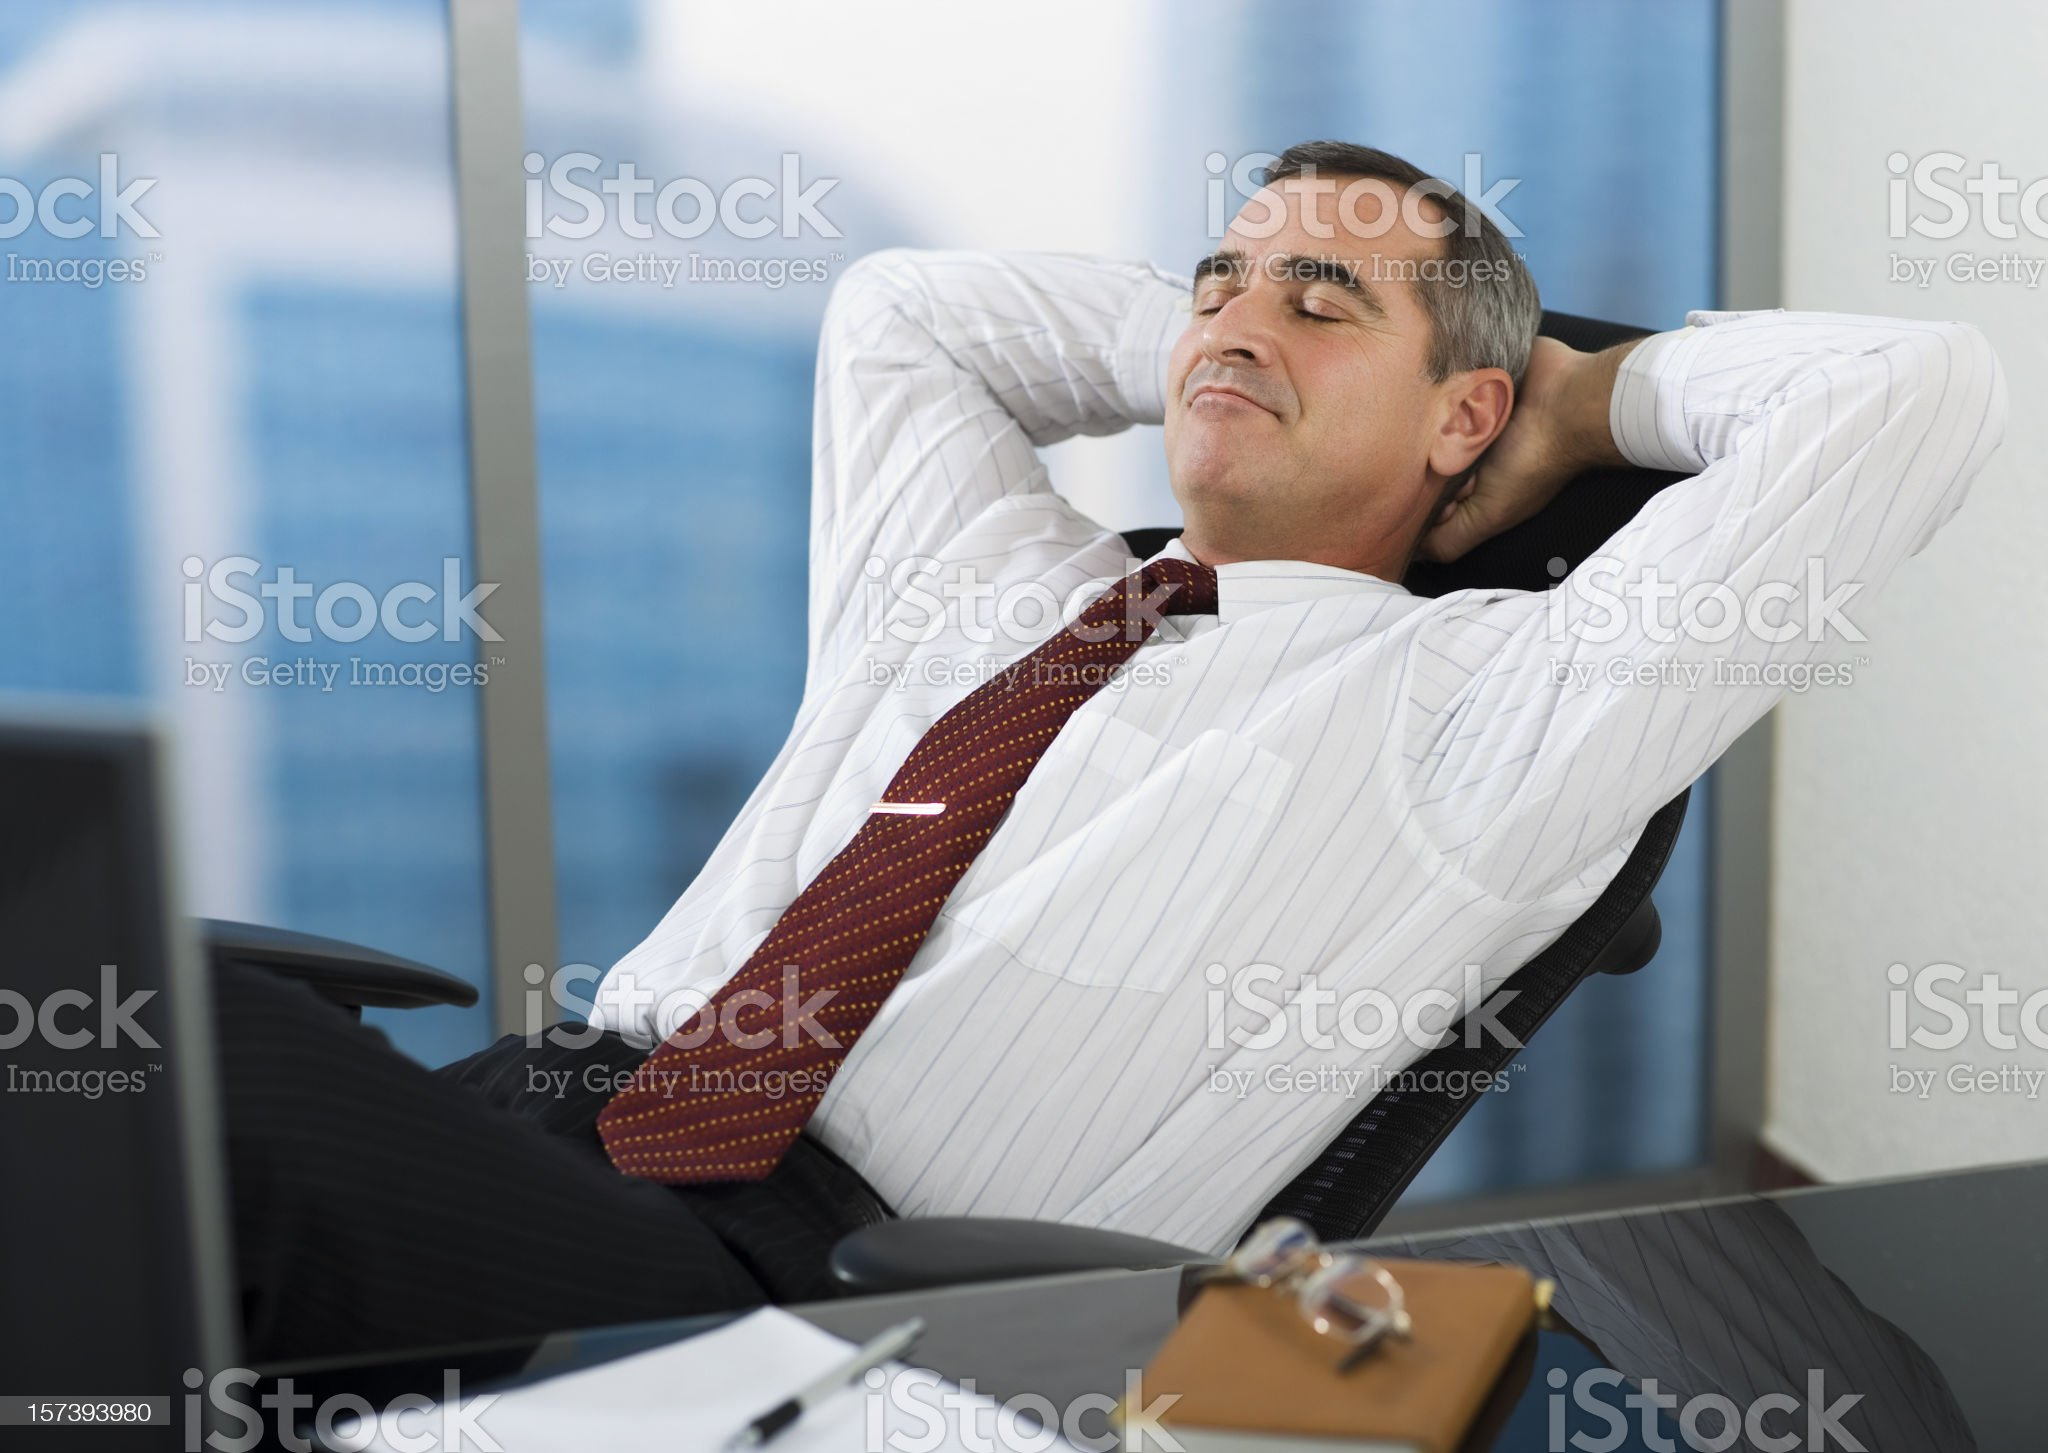 Business man having rest royalty-free stock photo